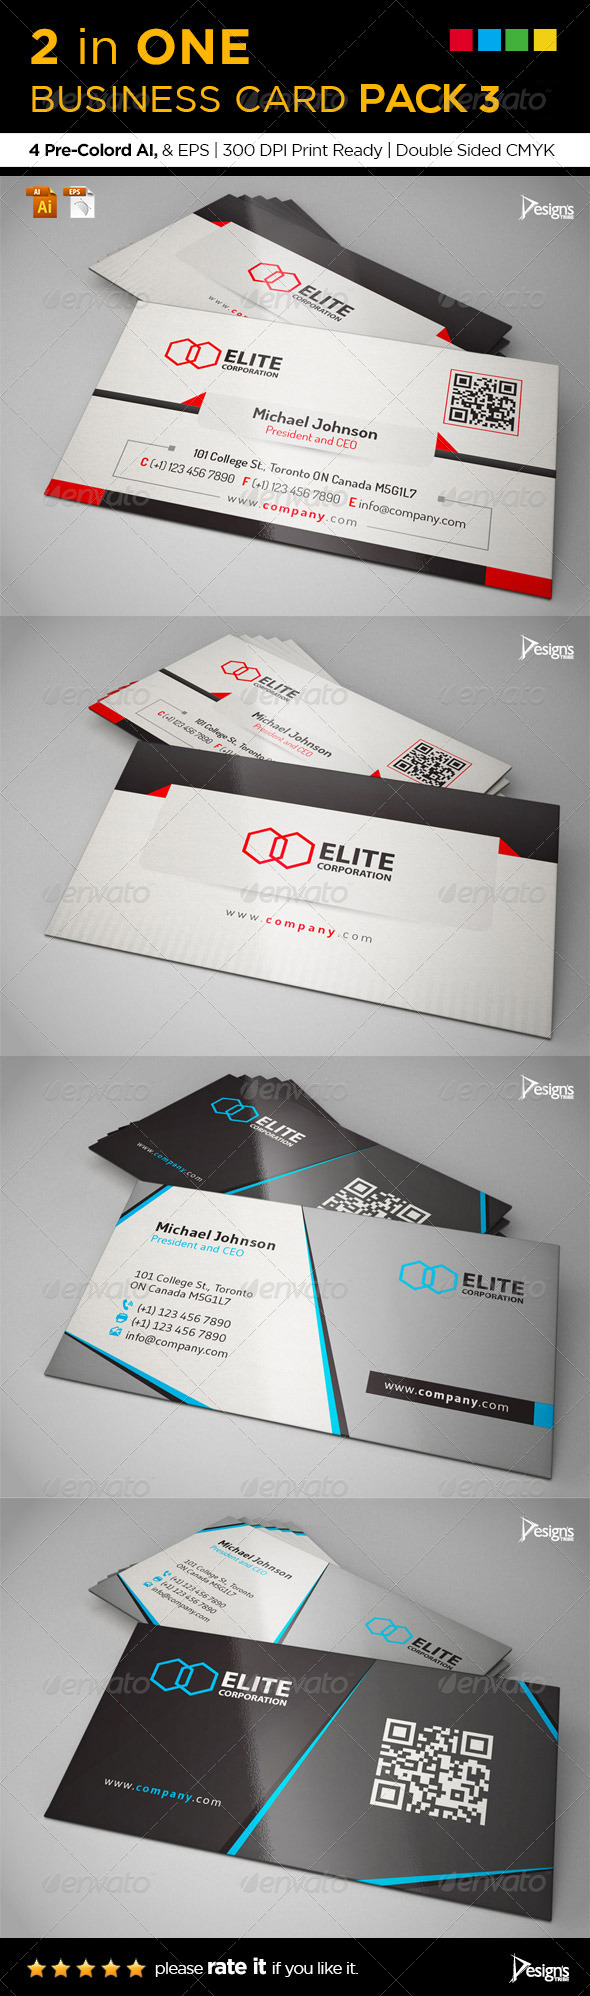 GraphicRiver 2 in One Business Card Pack 3 7417117